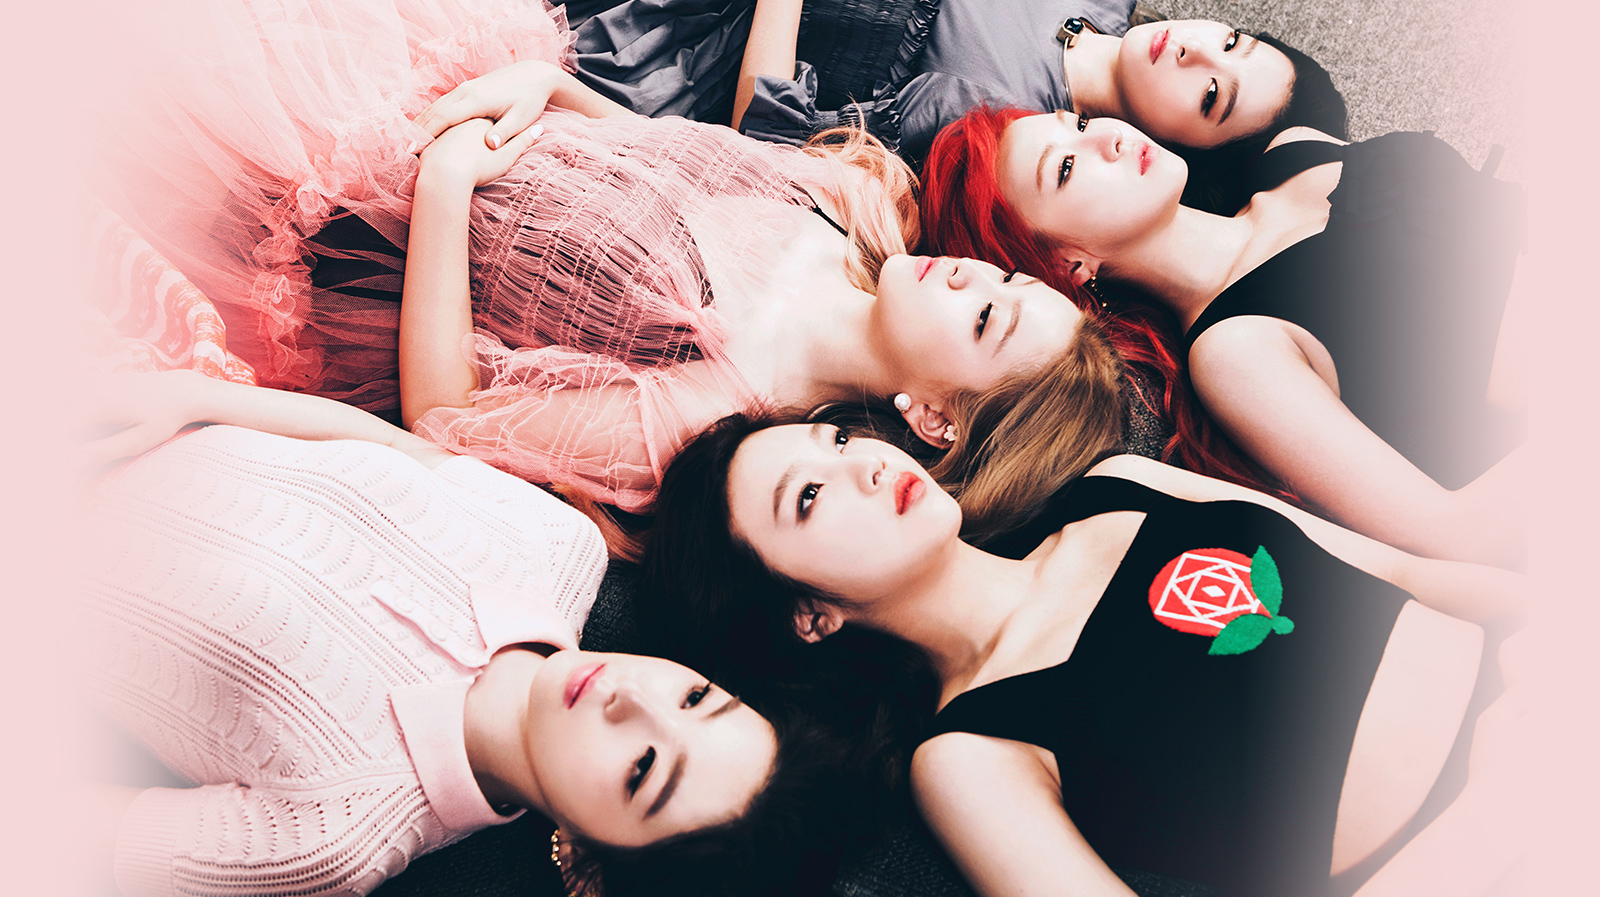 Red Velvet Takes the Number One Spot on Weekly Album Charts